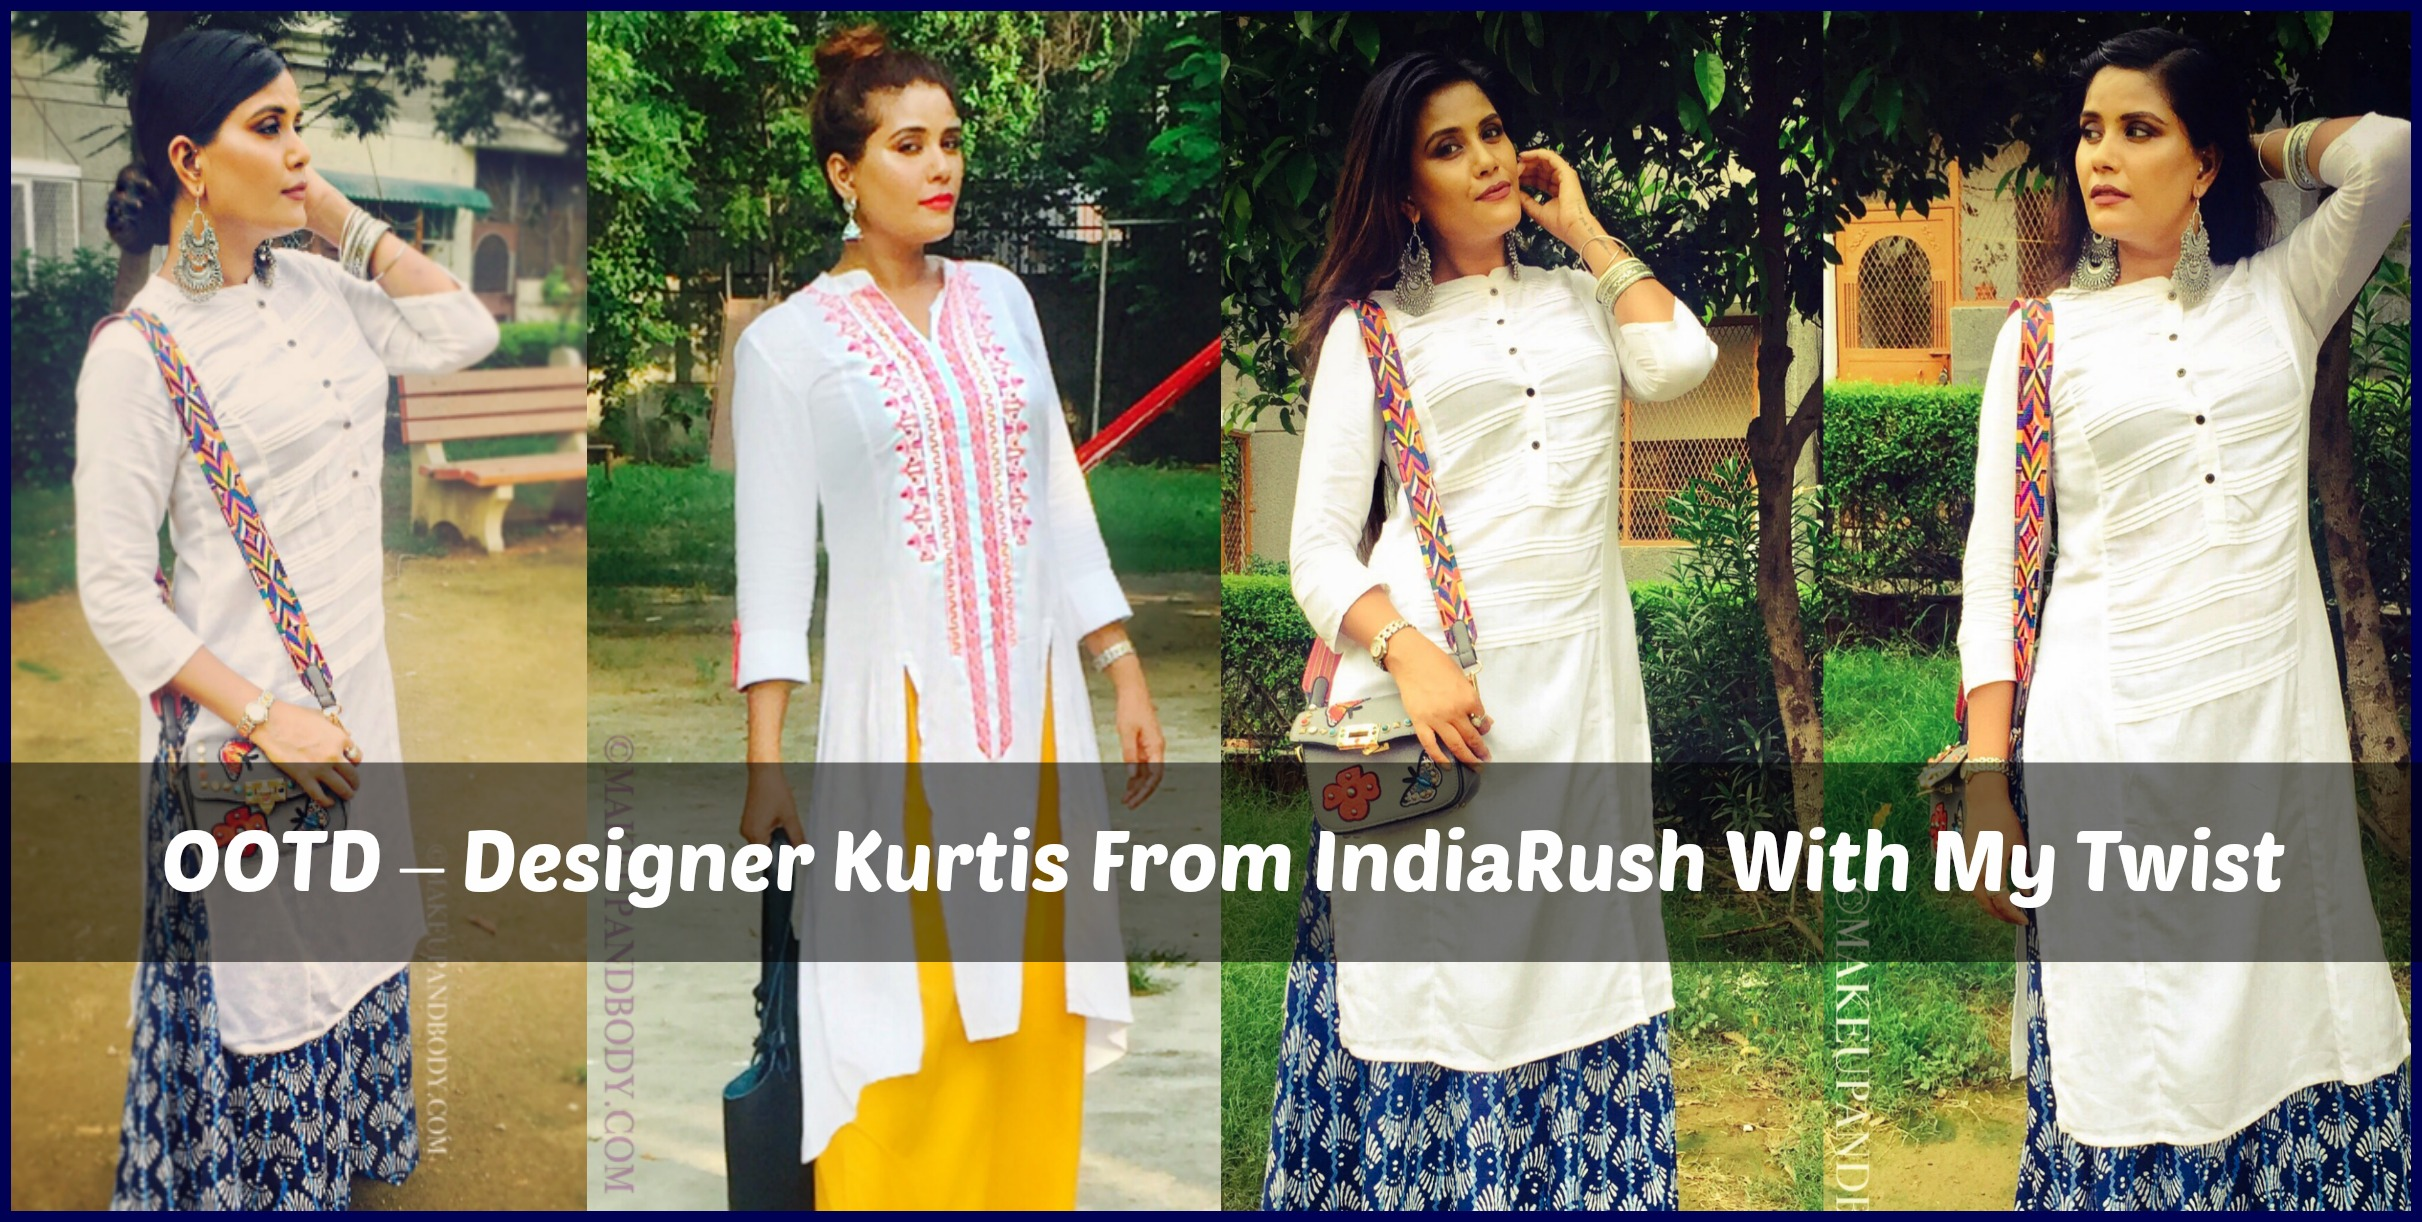 Designer Kurtis From IndiaRush With My Twist